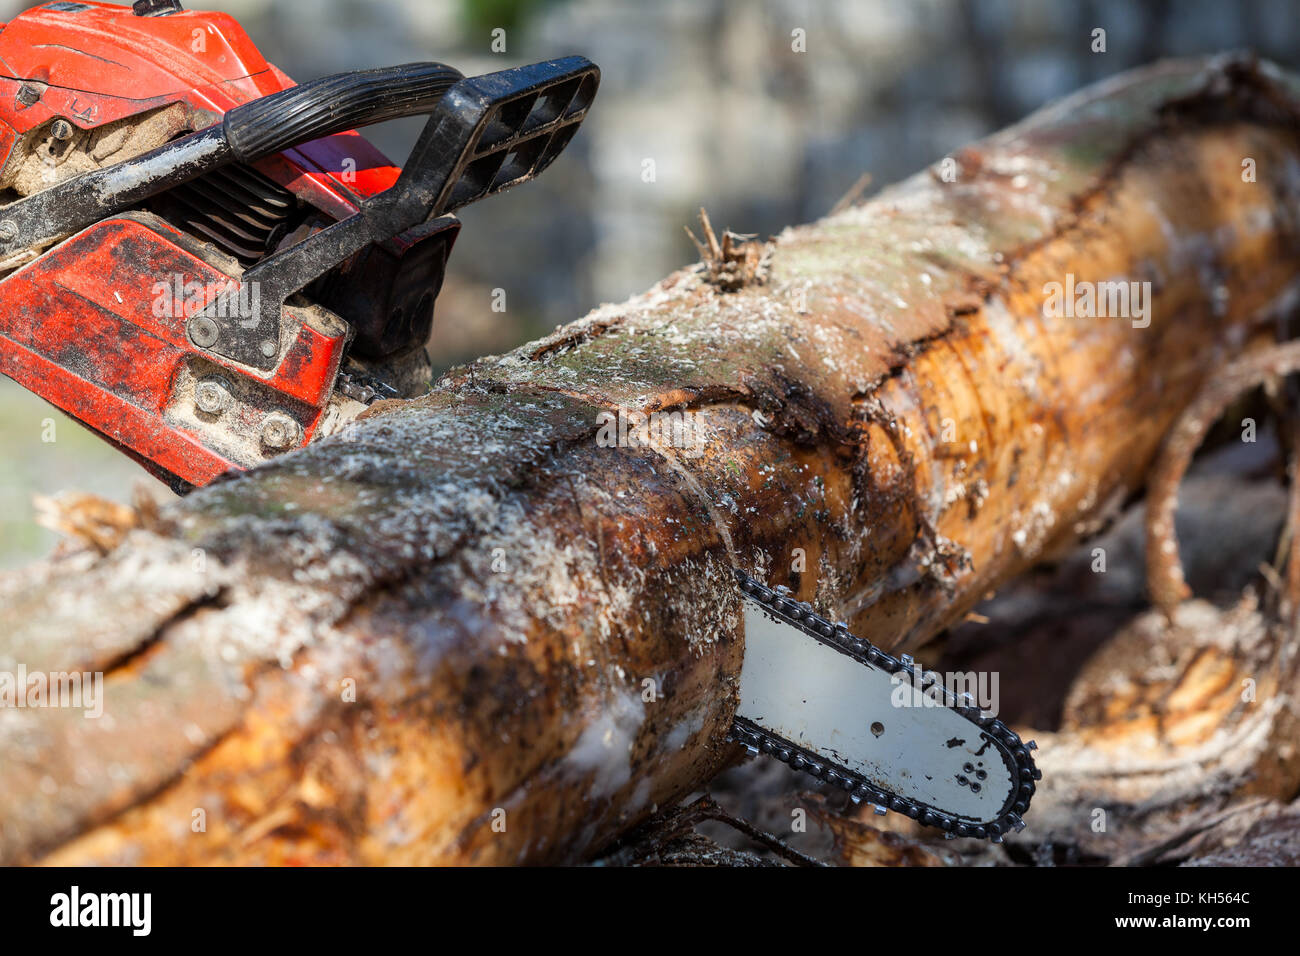 chainsaw - Stock Image